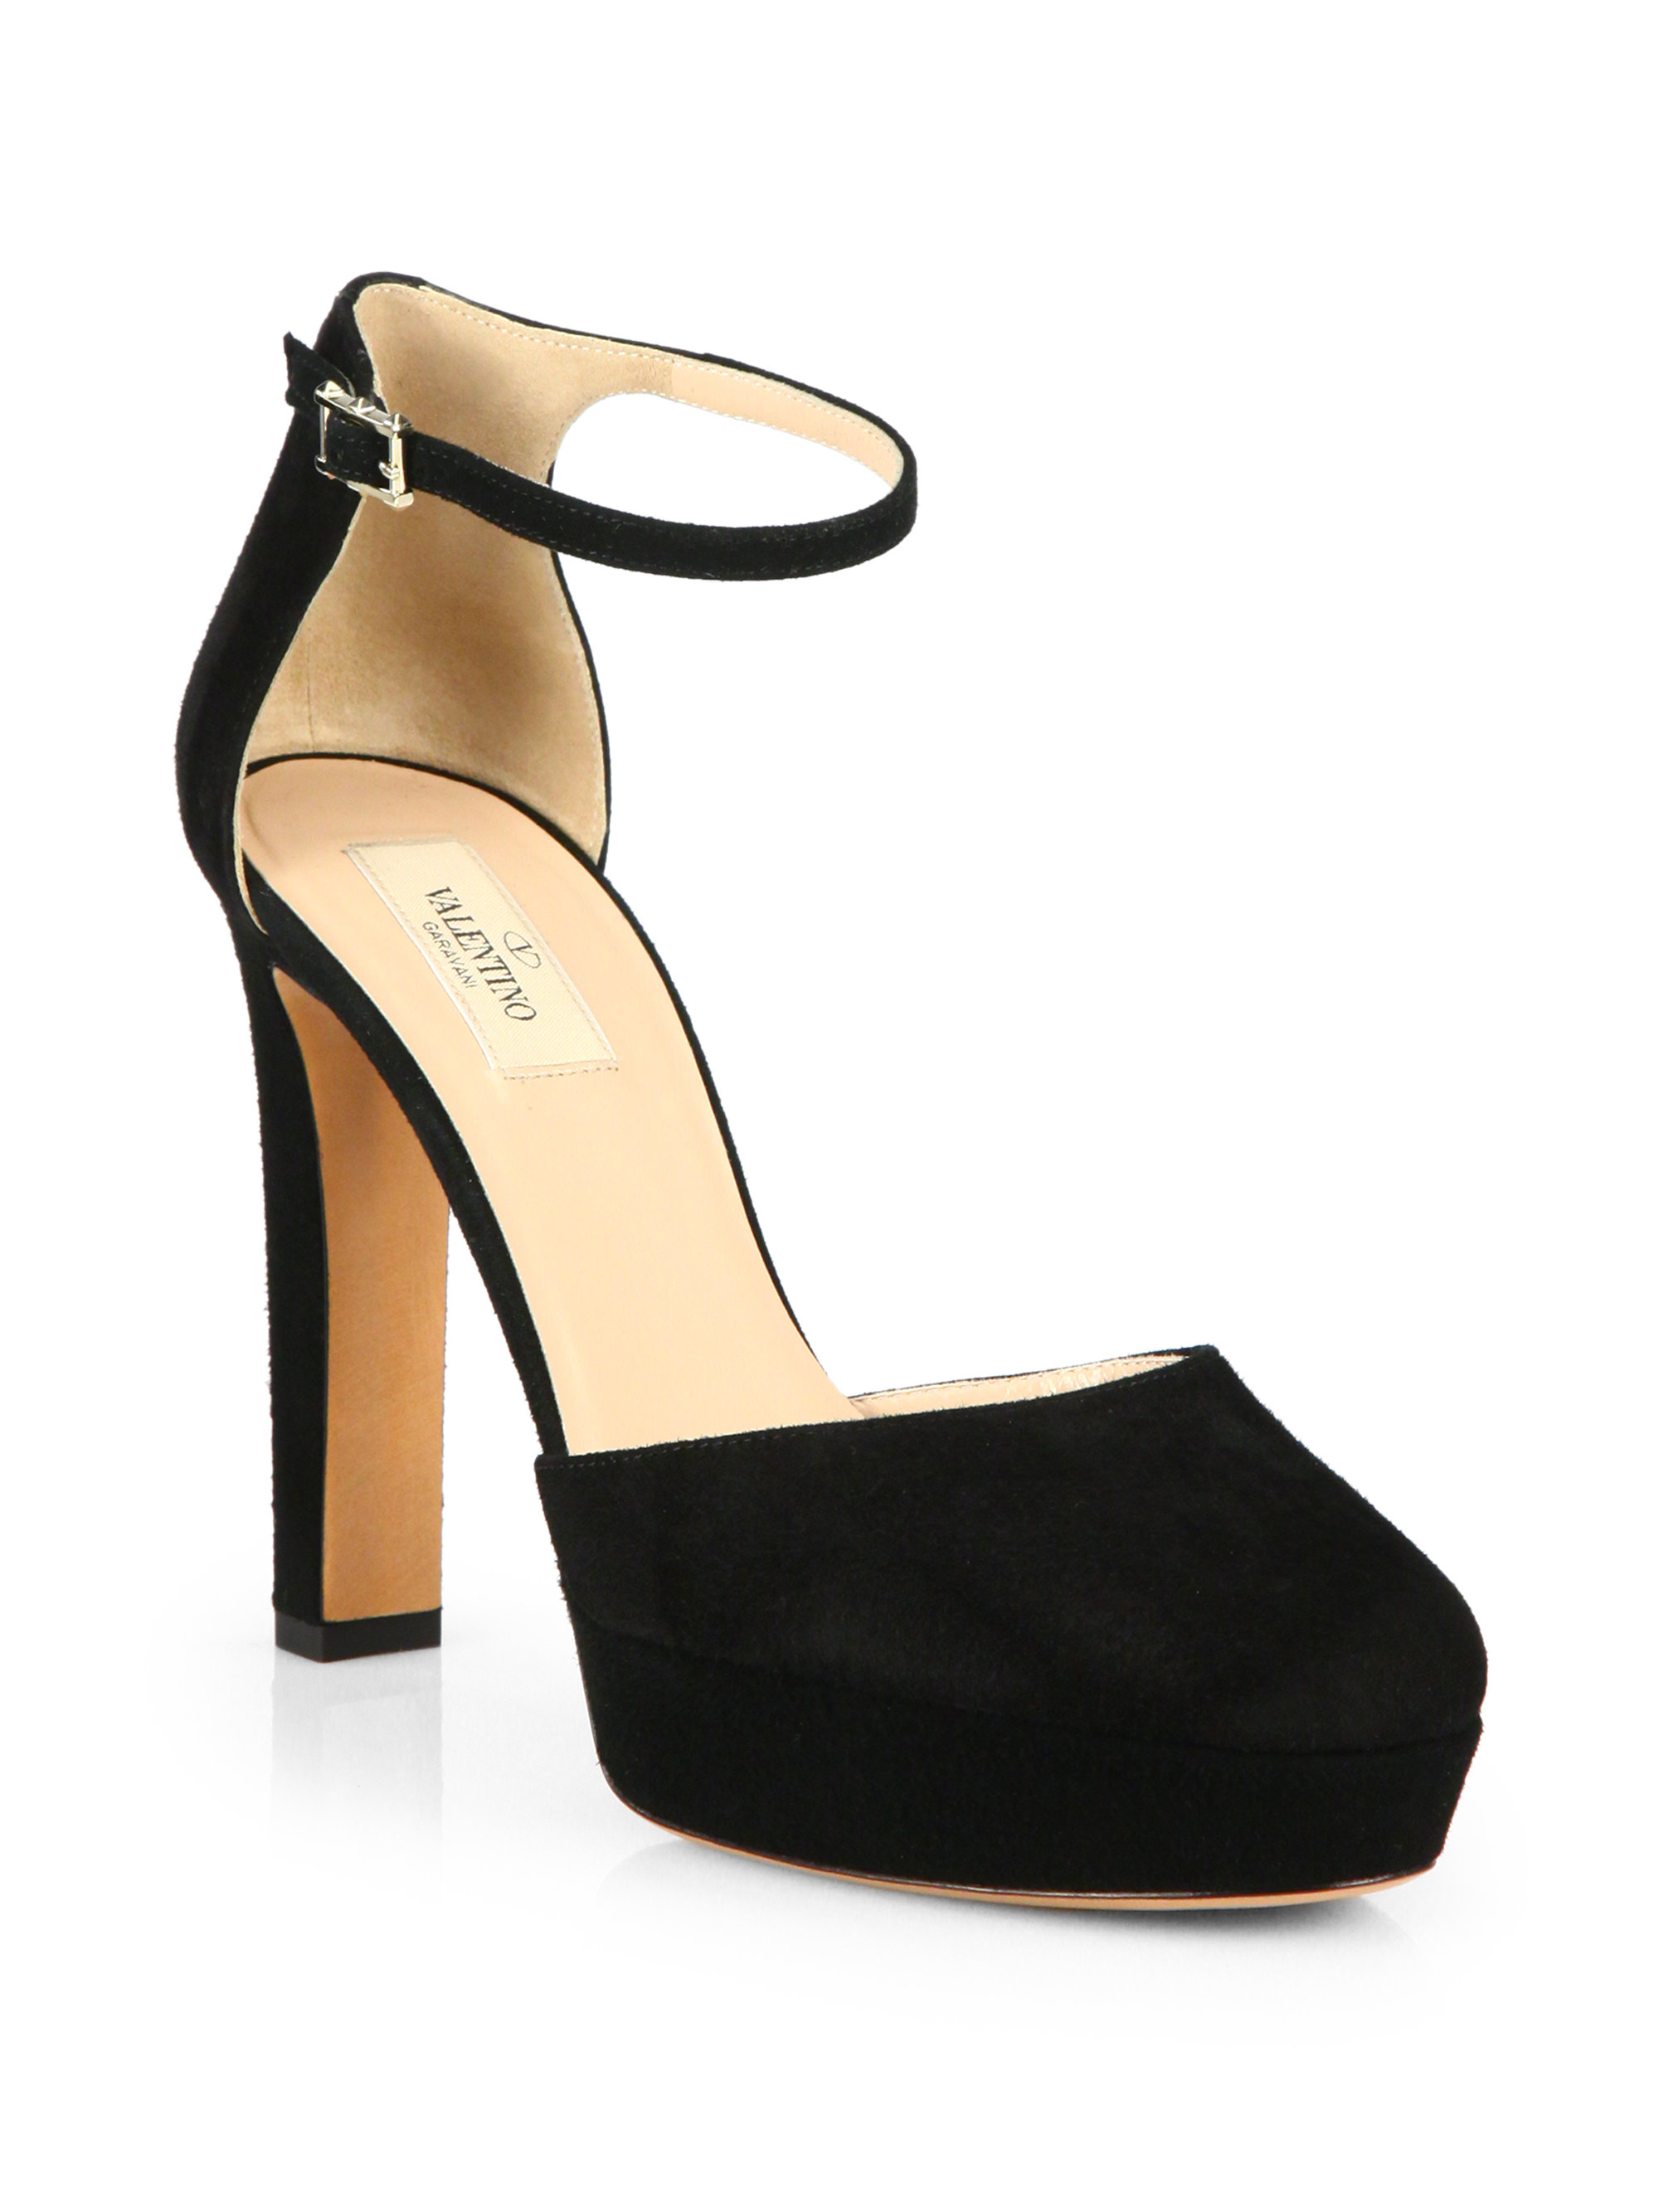 Valentino Suede Ankle-Strap Pumps in Black | Lyst